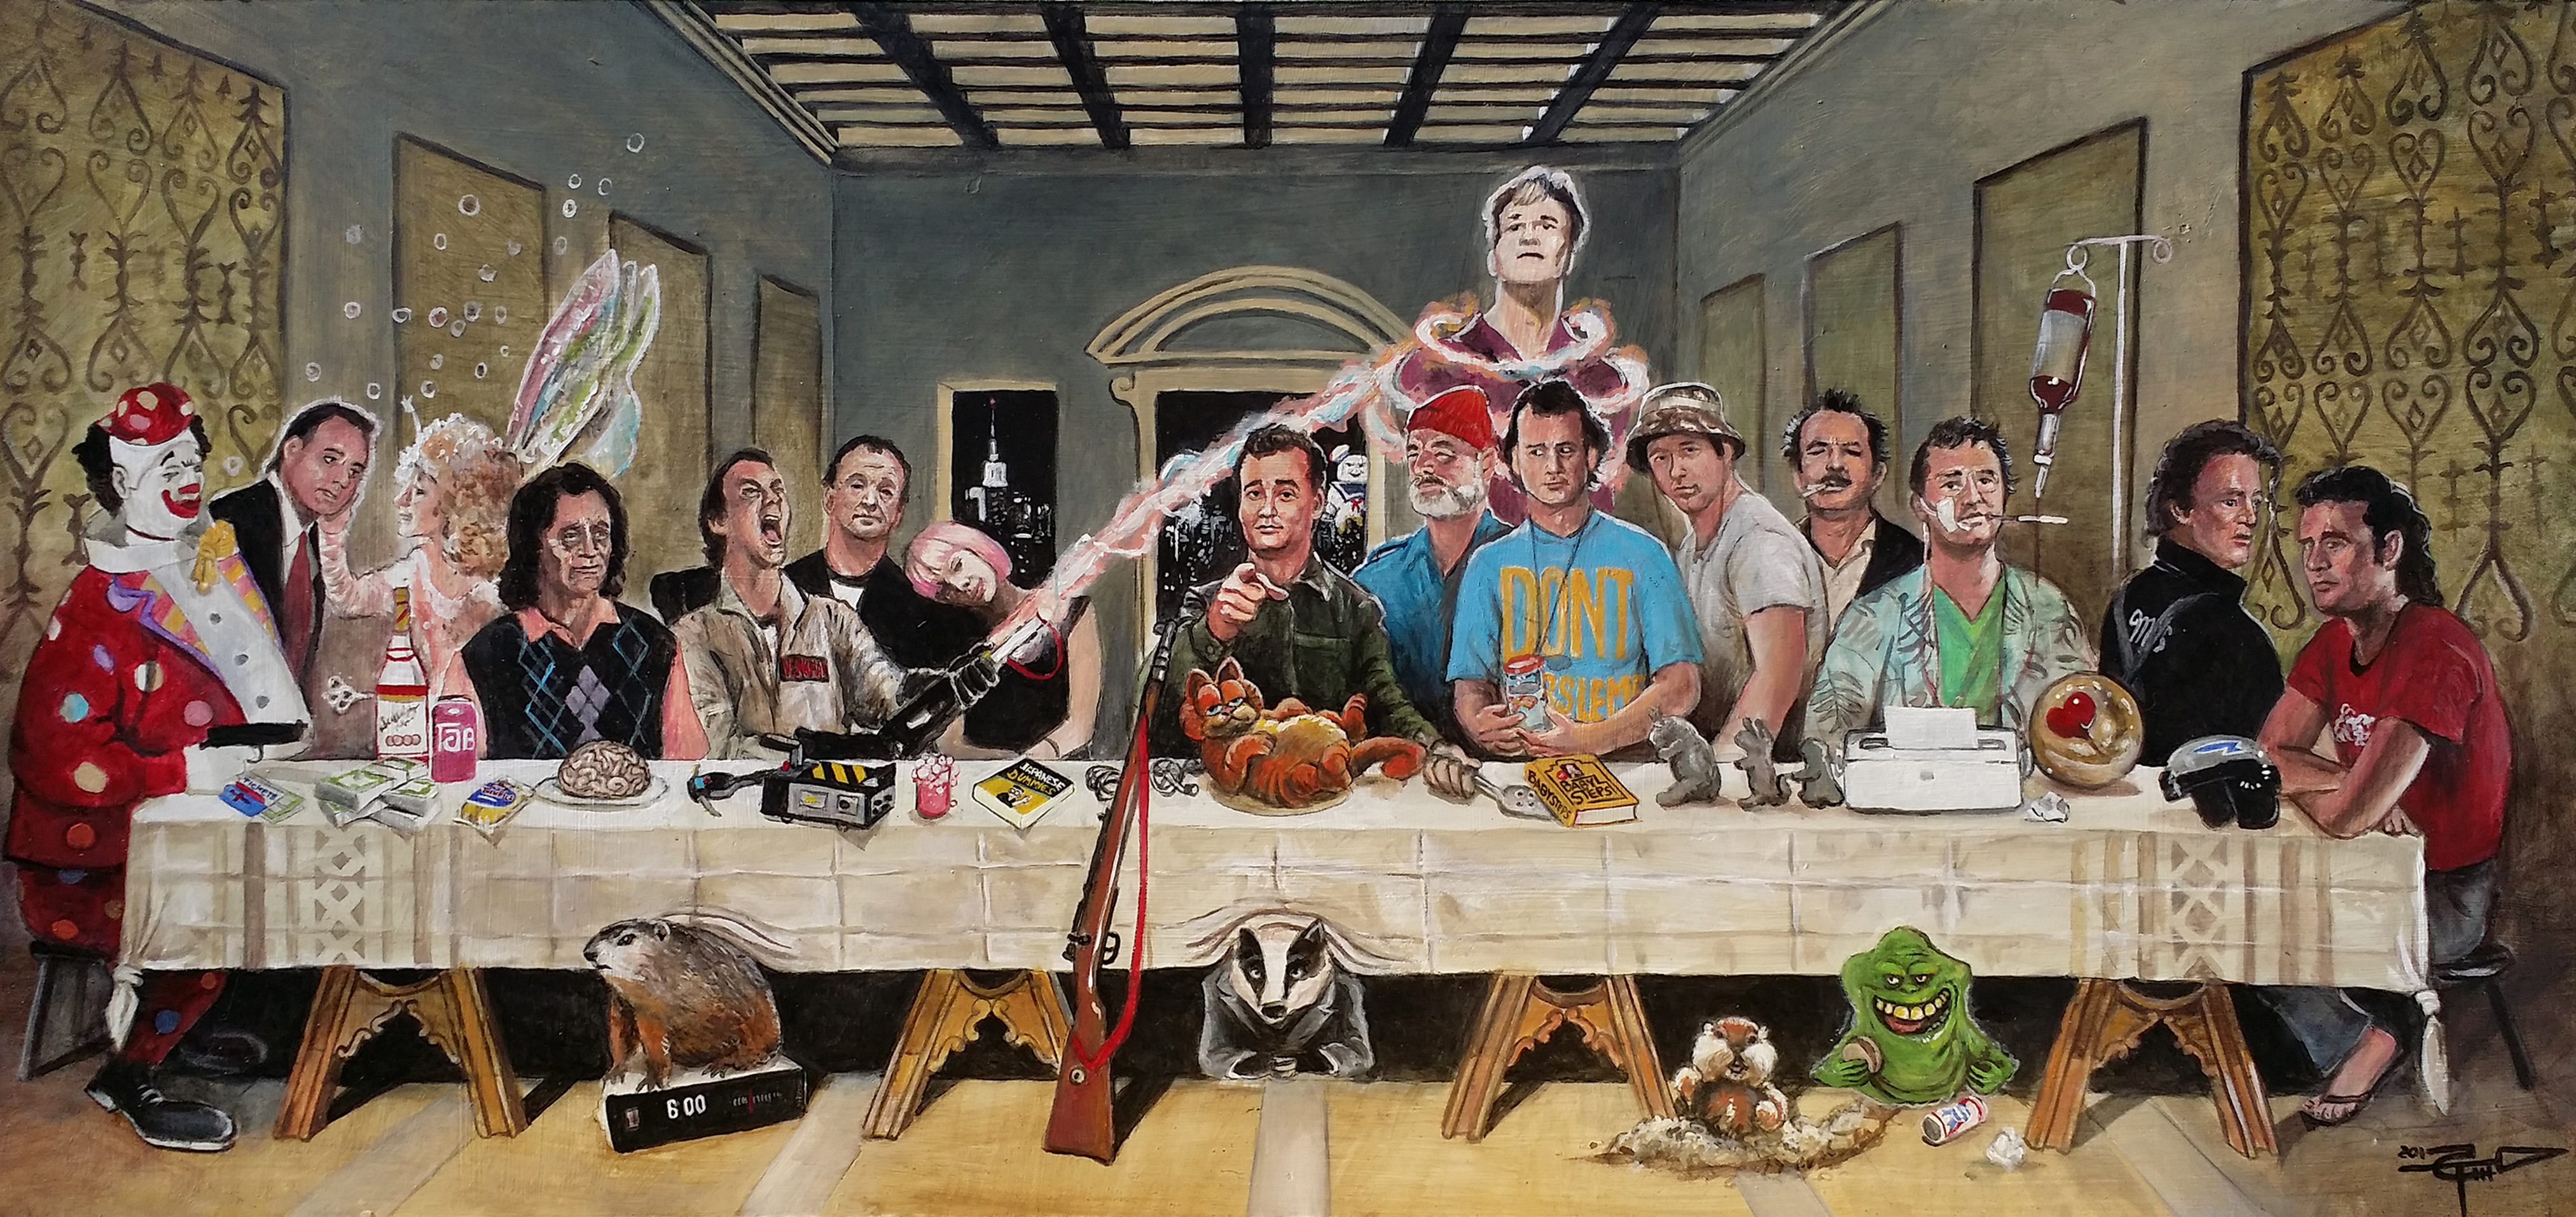 Bill S Last Supper On Storenvy